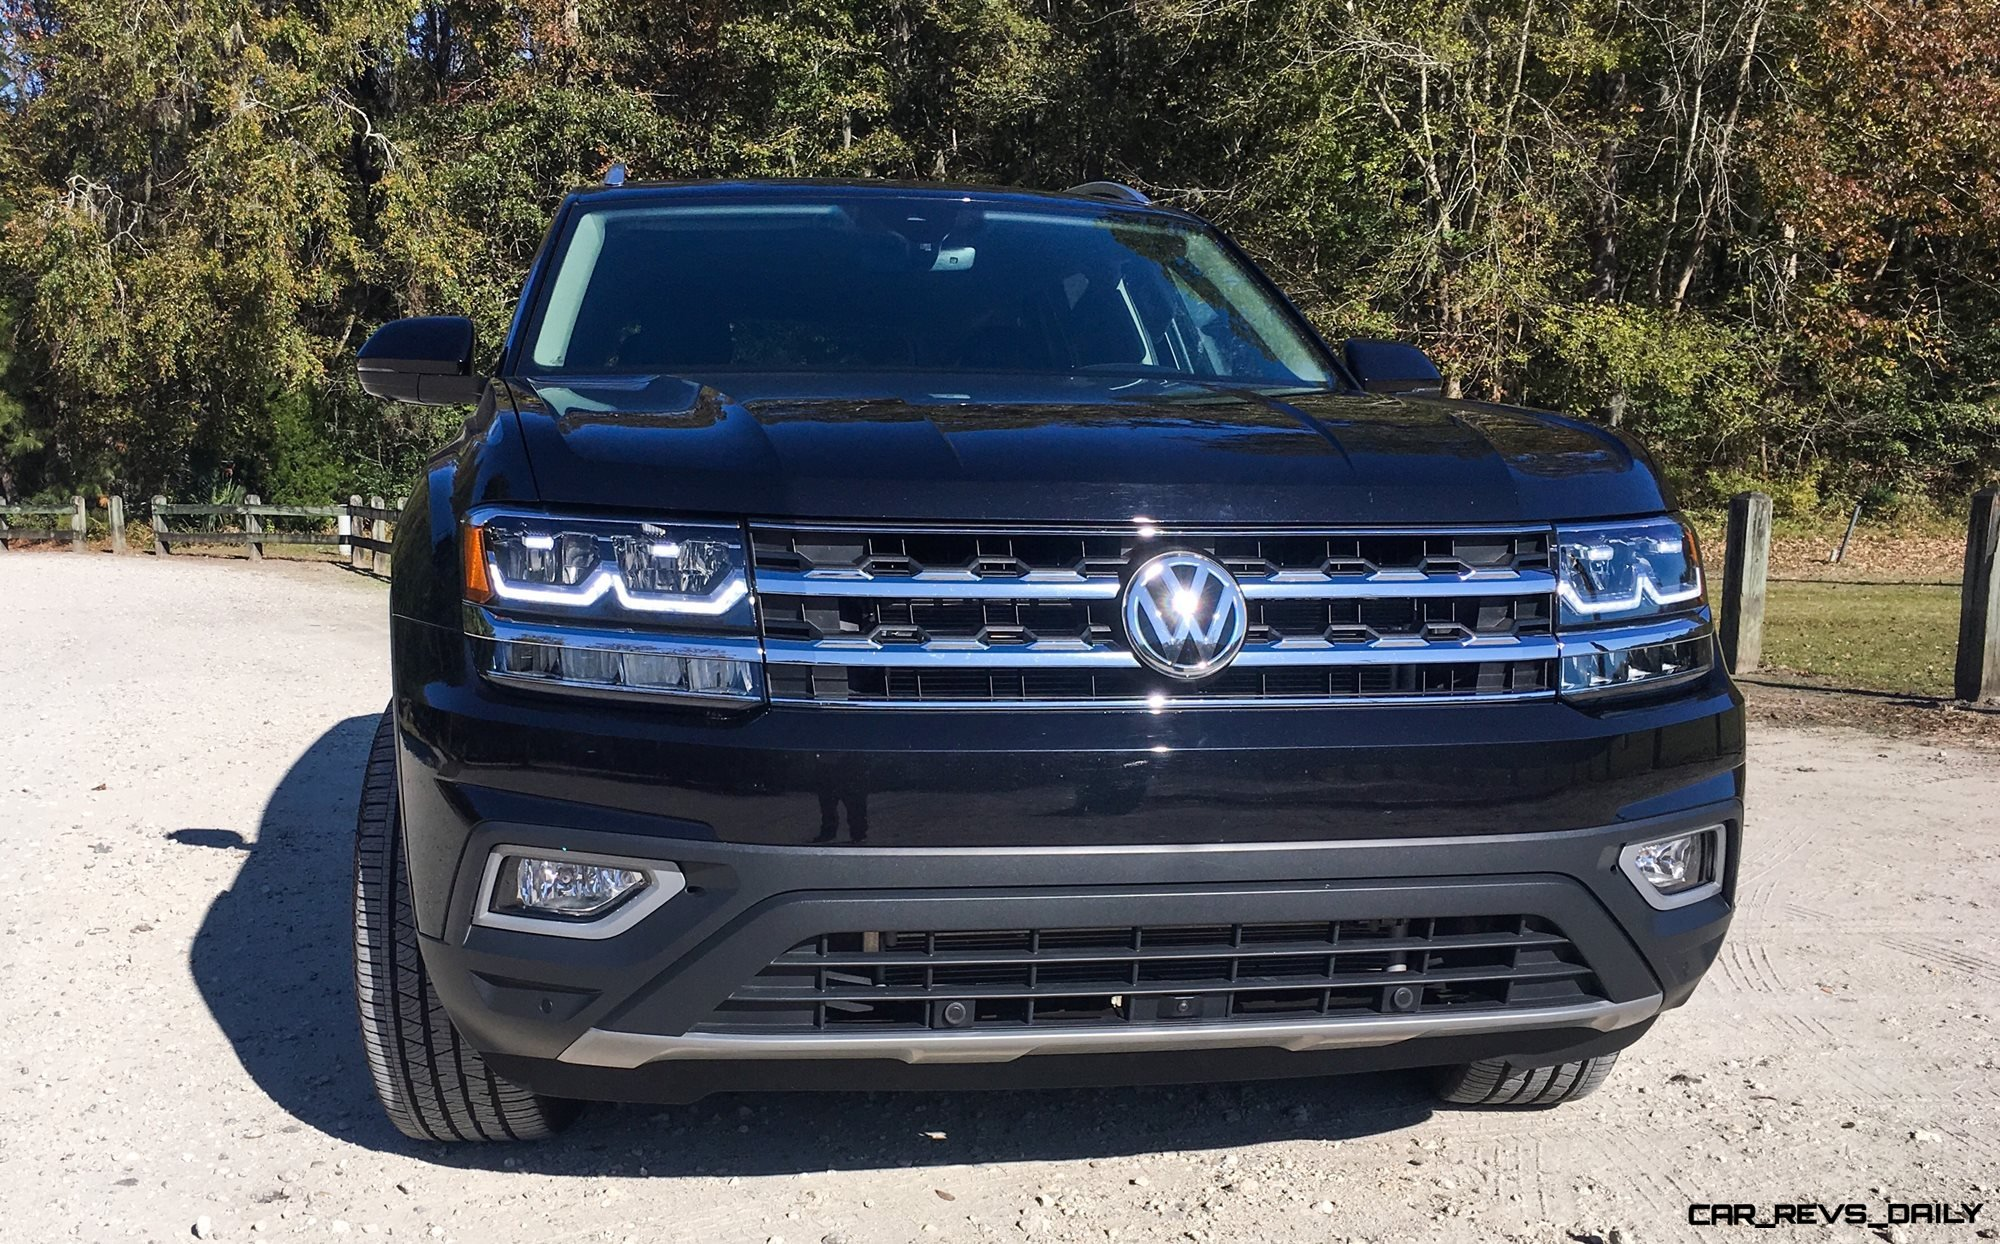 2018 VW Atlas V6 SEL Premium w/ 4Motion - Road Test Review +